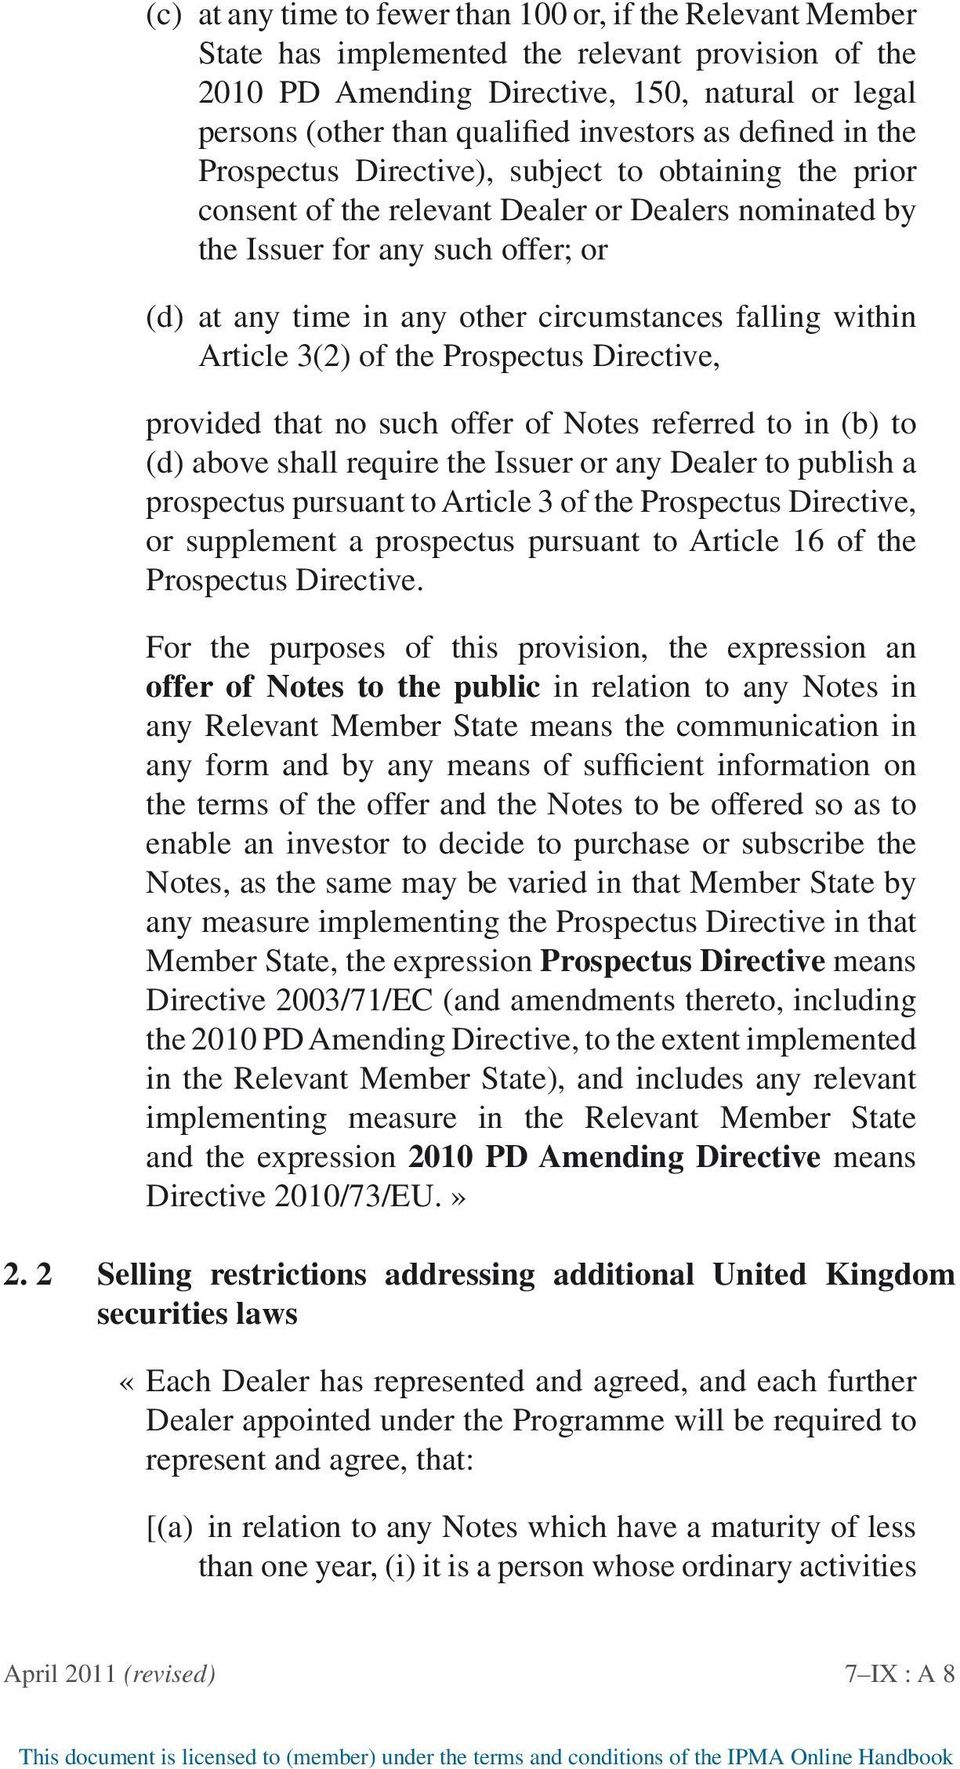 circumstances falling within Article 3(2) of the Prospectus Directive, provided that no such offer of Notes referred to in (b) to (d) above shall require the Issuer or any Dealer to publish a